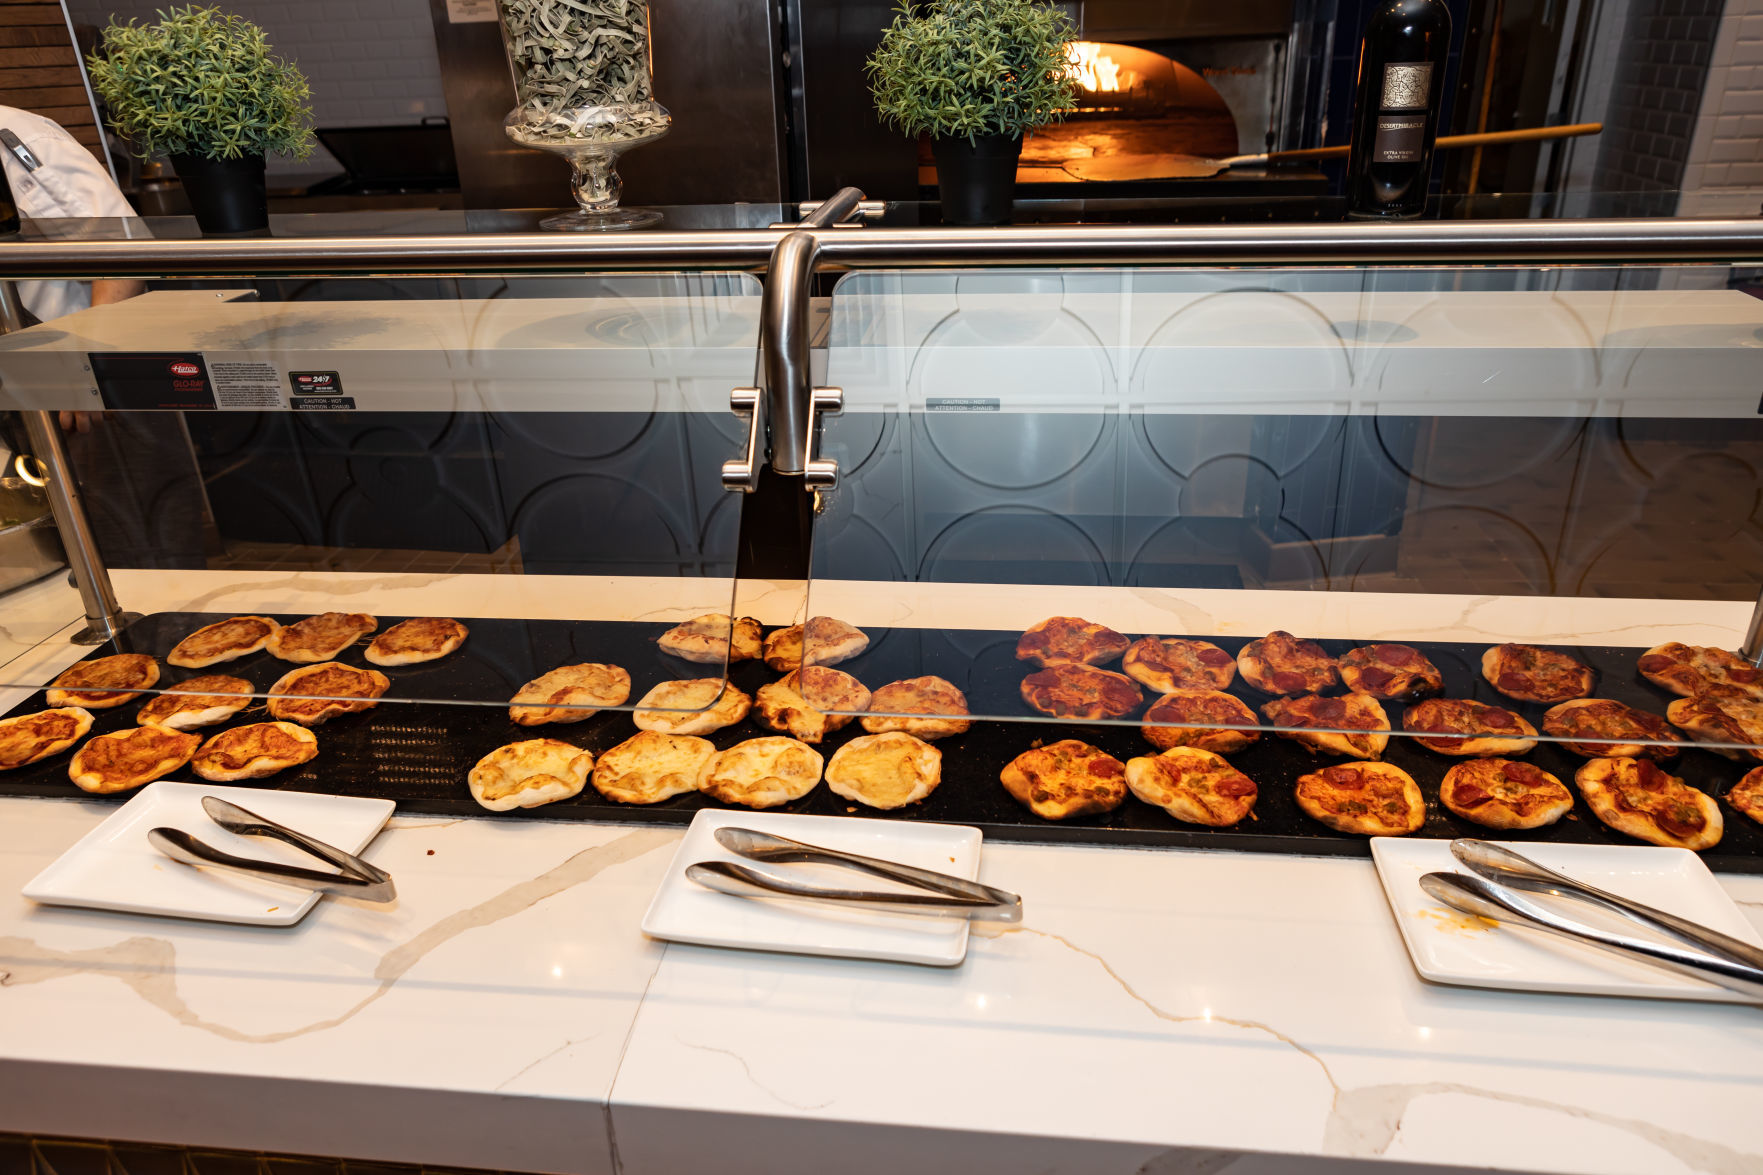 hard rock s fresh harvest buffet brings old traditions into a modern rh atlanticcityweekly com